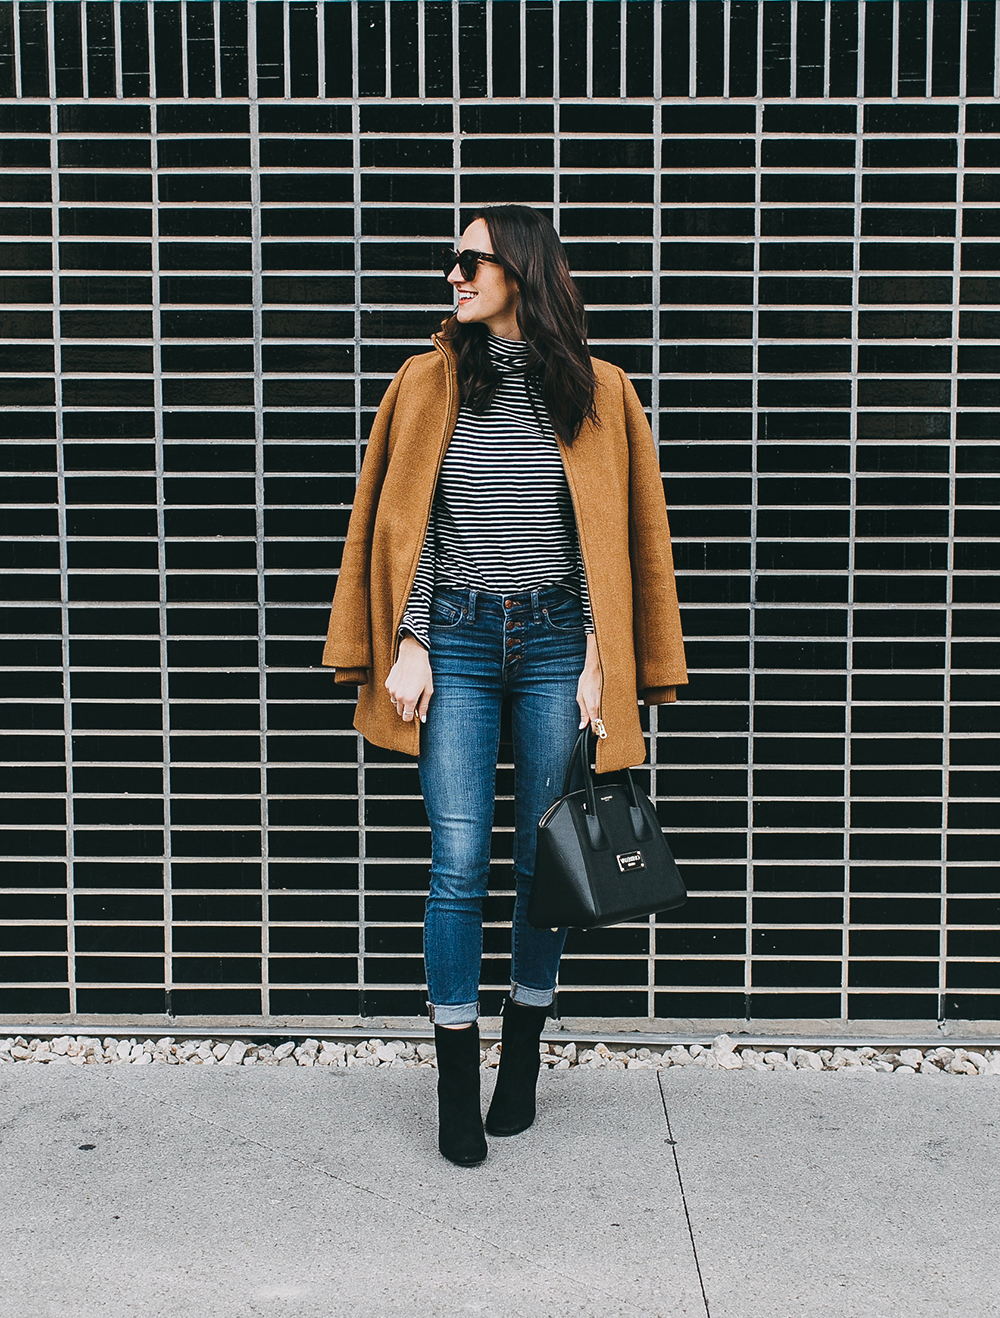 livvyland-blog-olivia-watson-austin-texas-fashion-blogger-j-crew-camel-winter-coat-striped-turtleneck-mid-calf-ankle-booties-2